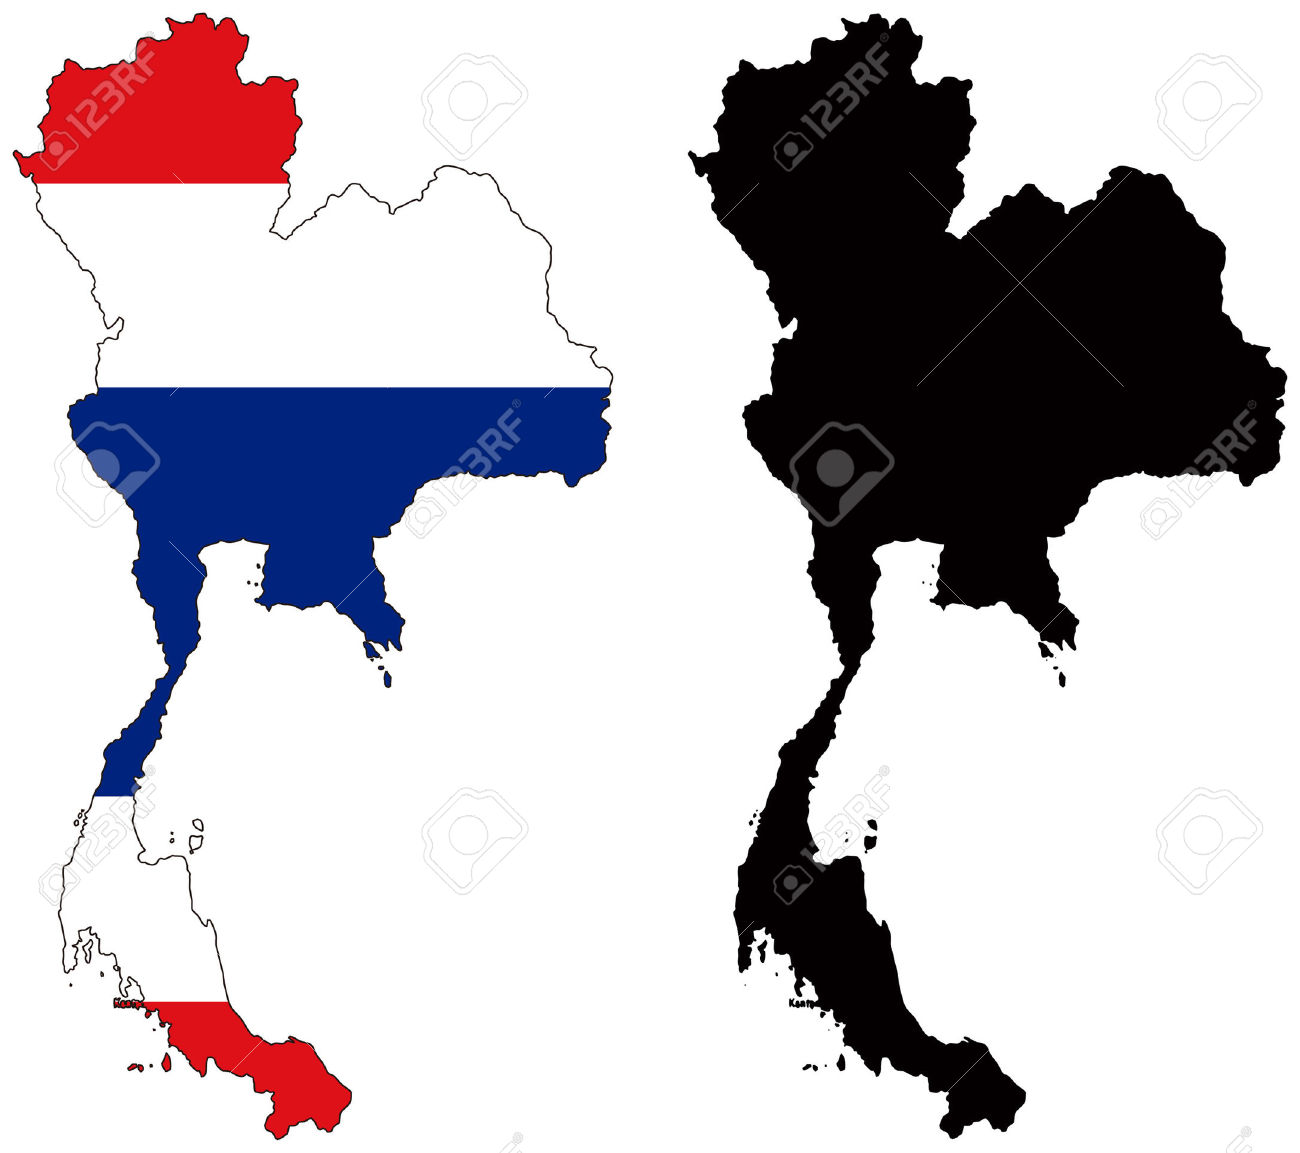 Thailand map clipart 4 » Clipart Station.